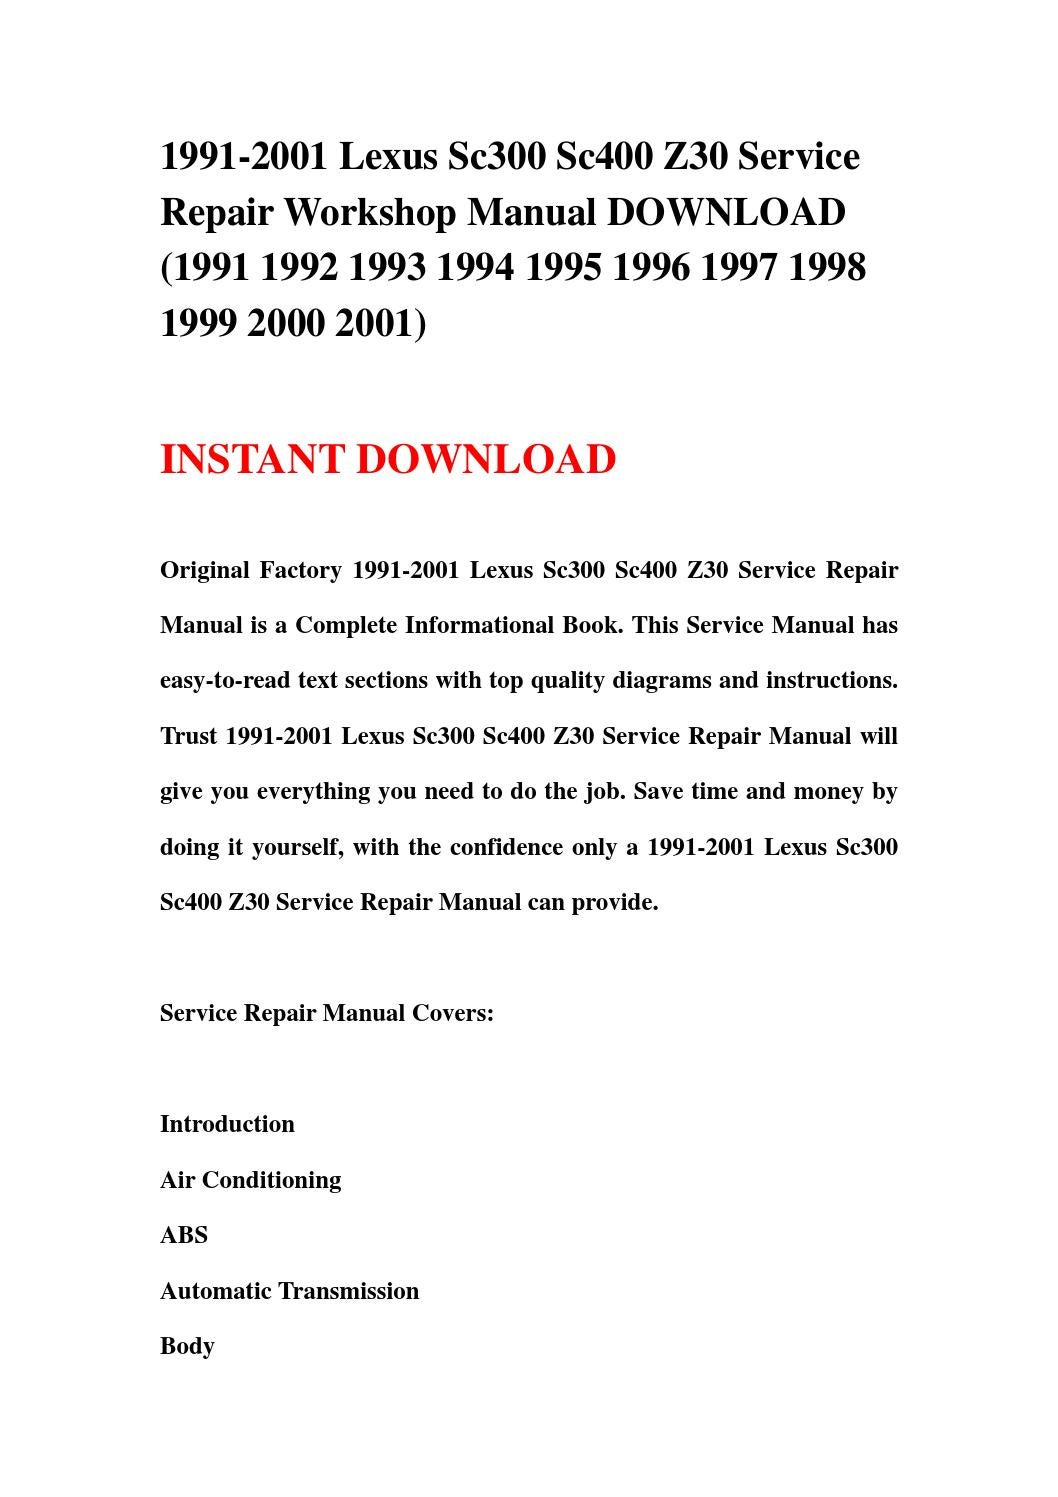 1991 2001 Lexus Sc300 Sc400 Z30 Service Repair Workshop Manual 92 Wiring Diagram Download 1992 1993 1994 1995 19 By Kmjnshenfn Issuu